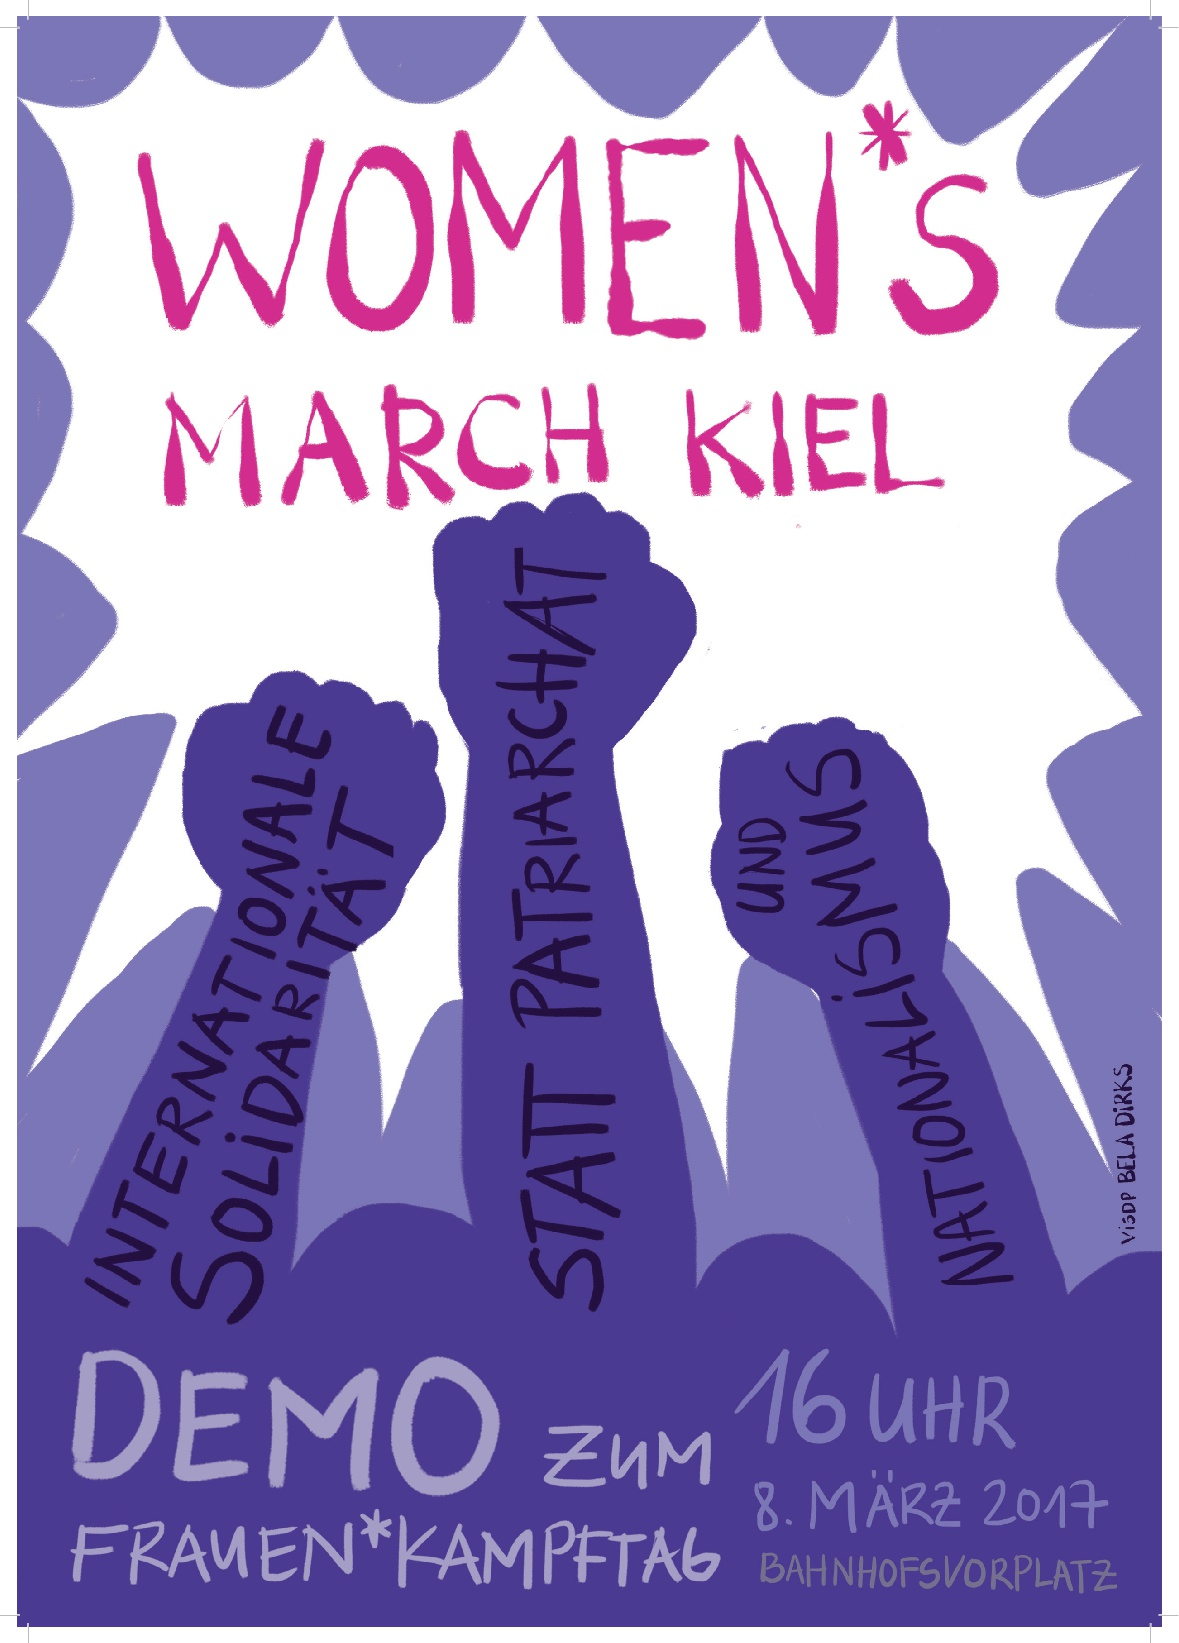 Aufruf zum Women*s March Kiel